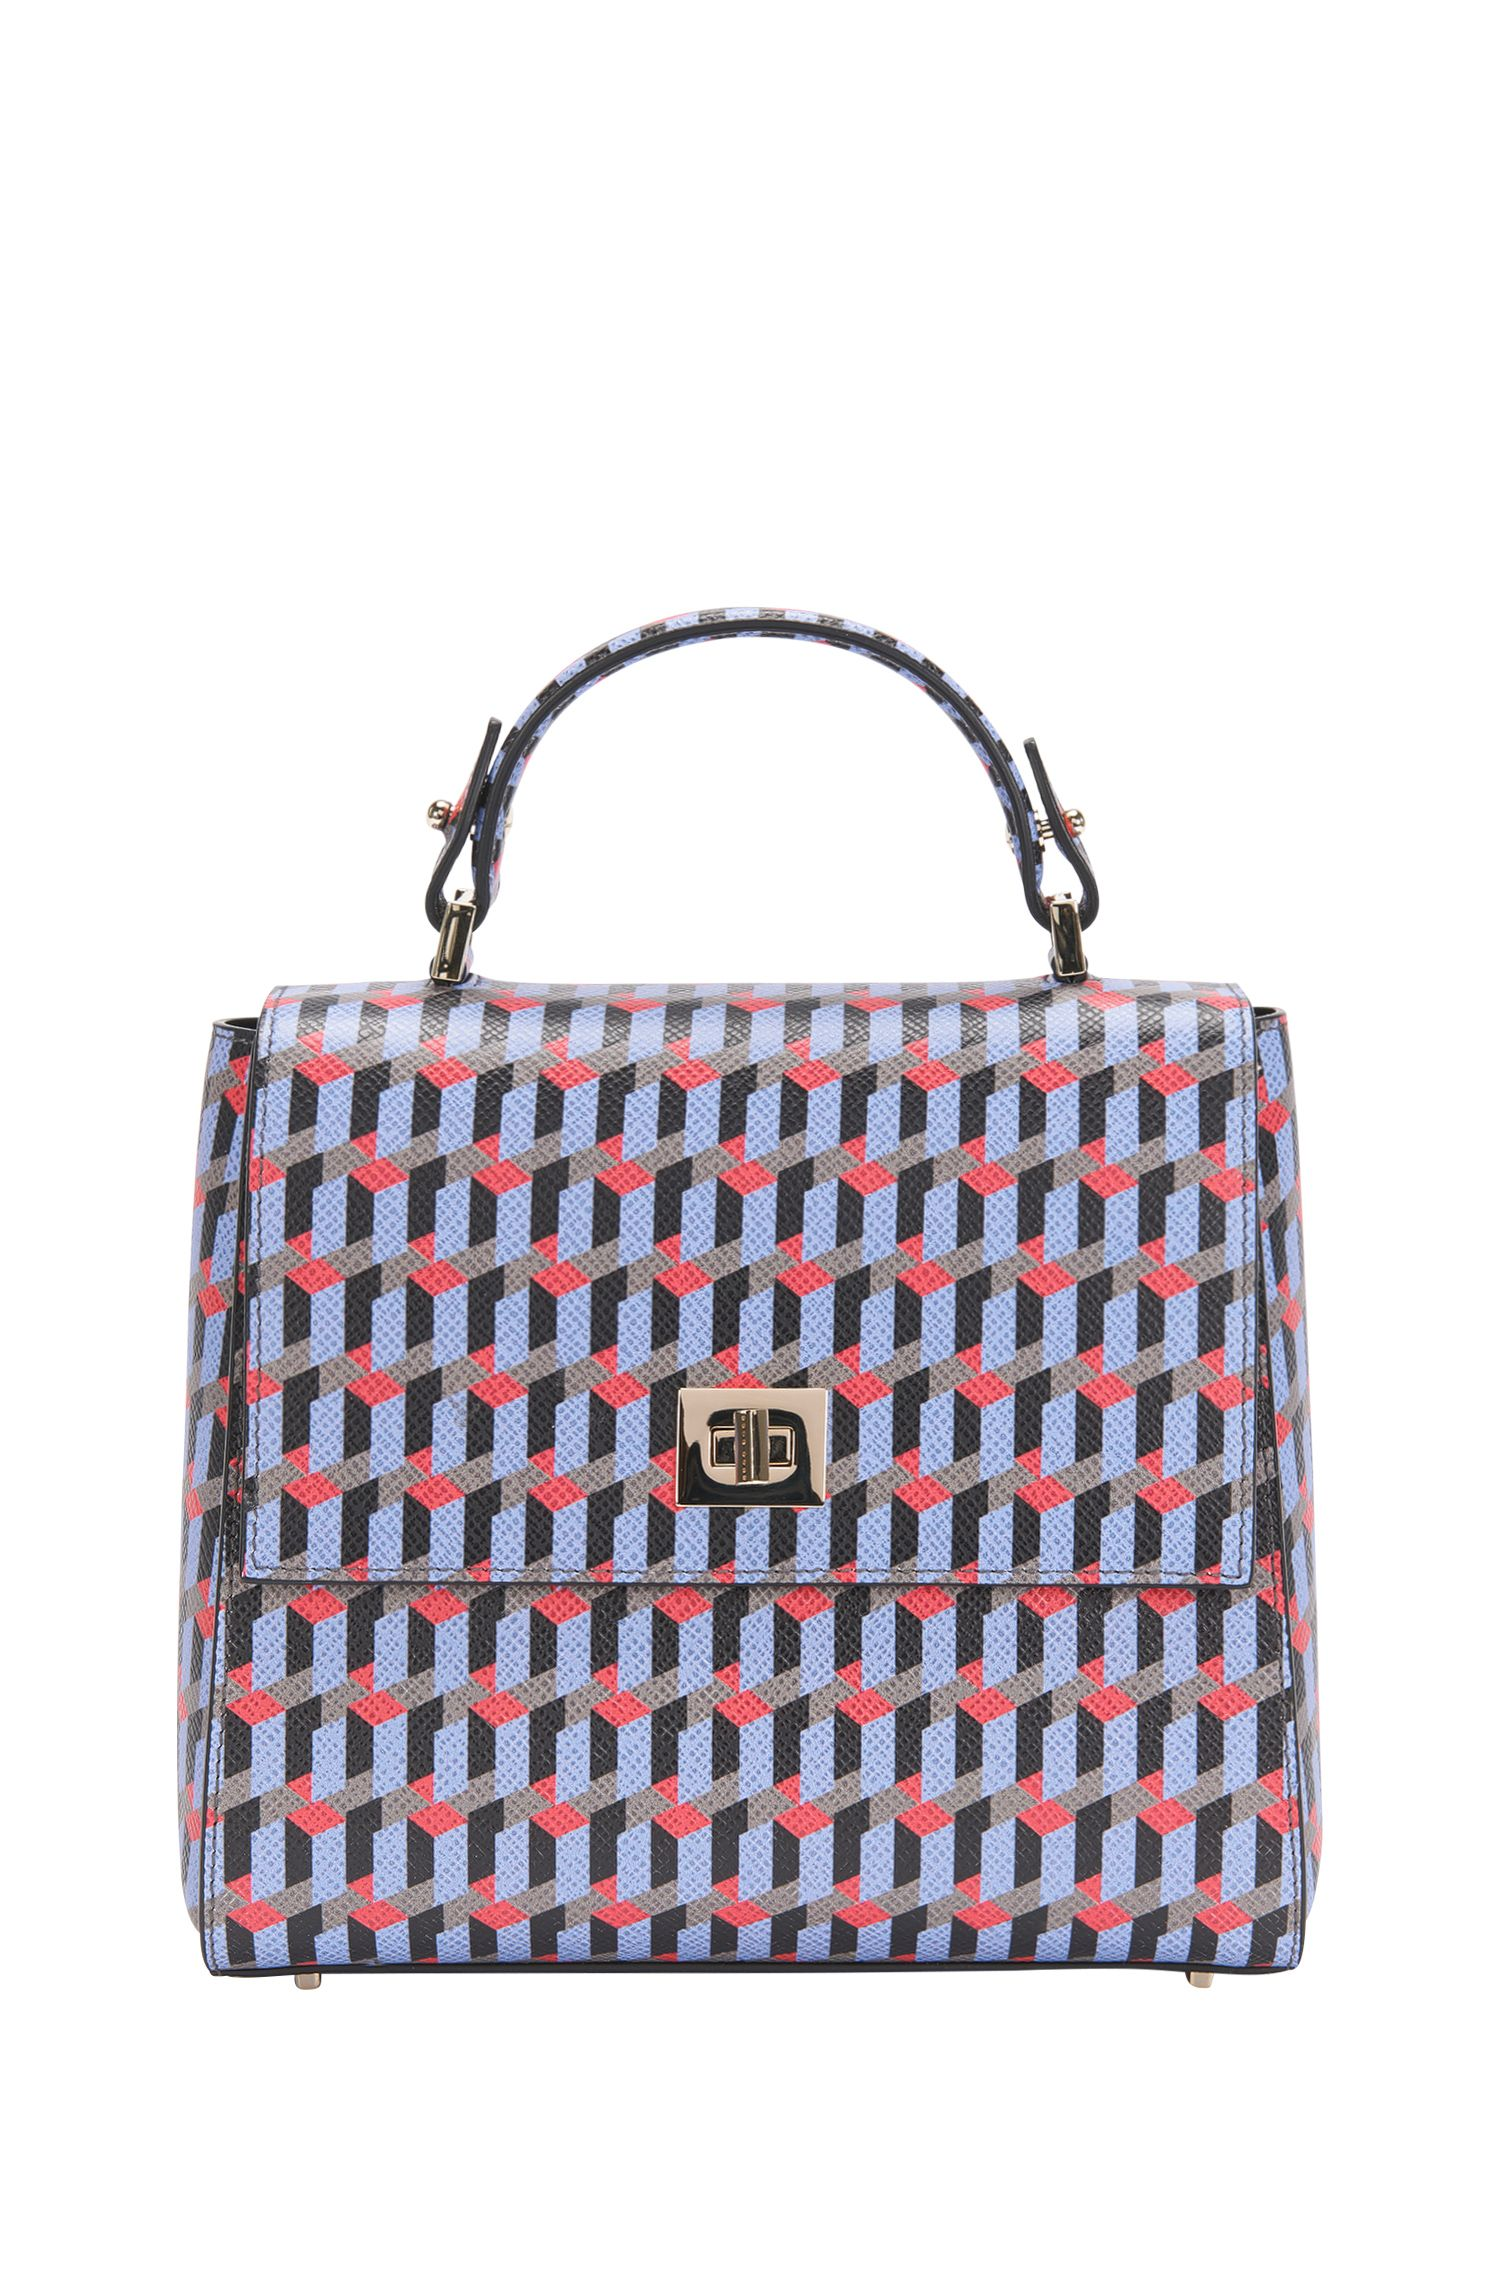 Calfskin Printed Bag | Bespoke TH S FP